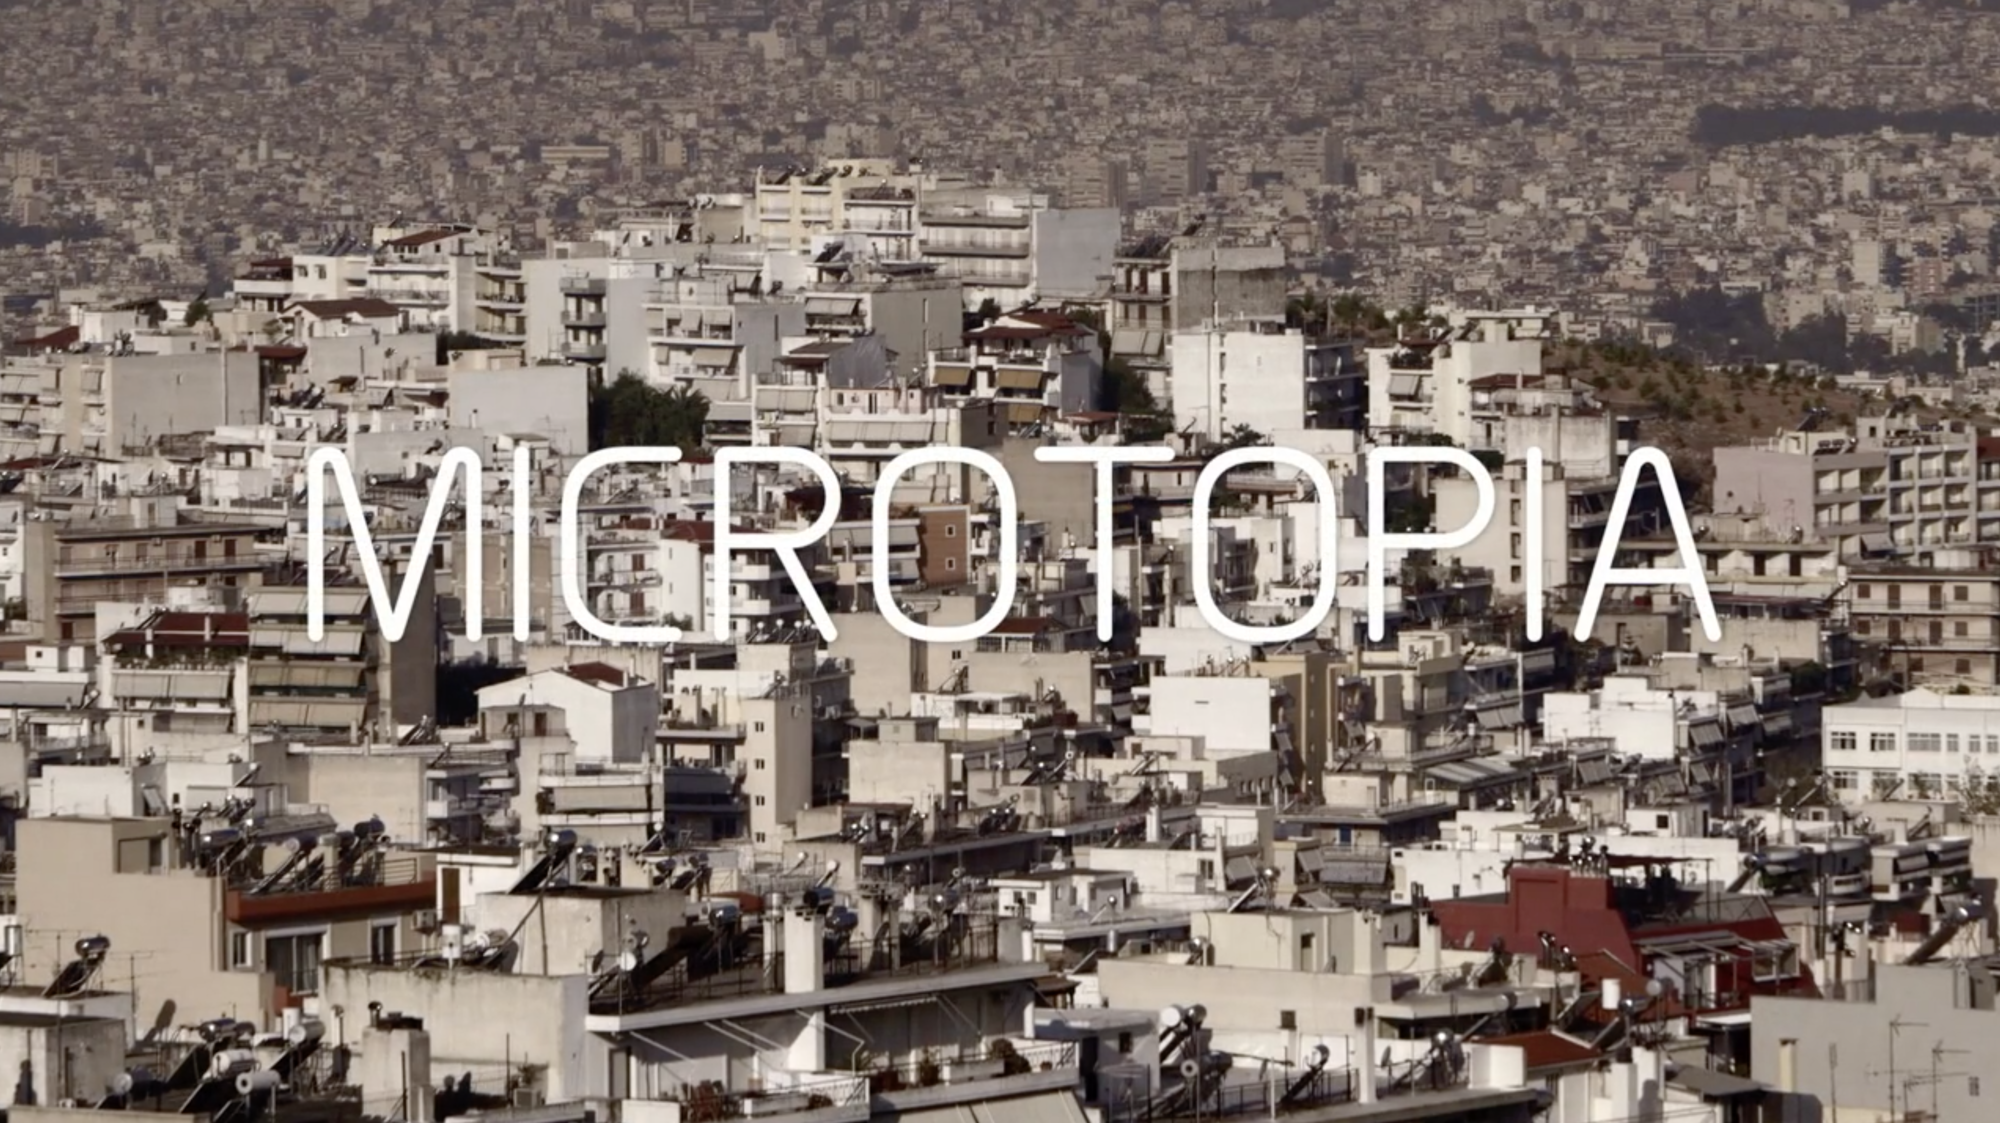 Architecture Documentaries To Watch In 2015, Microtopia (2013) / Jesper Wachtmeister